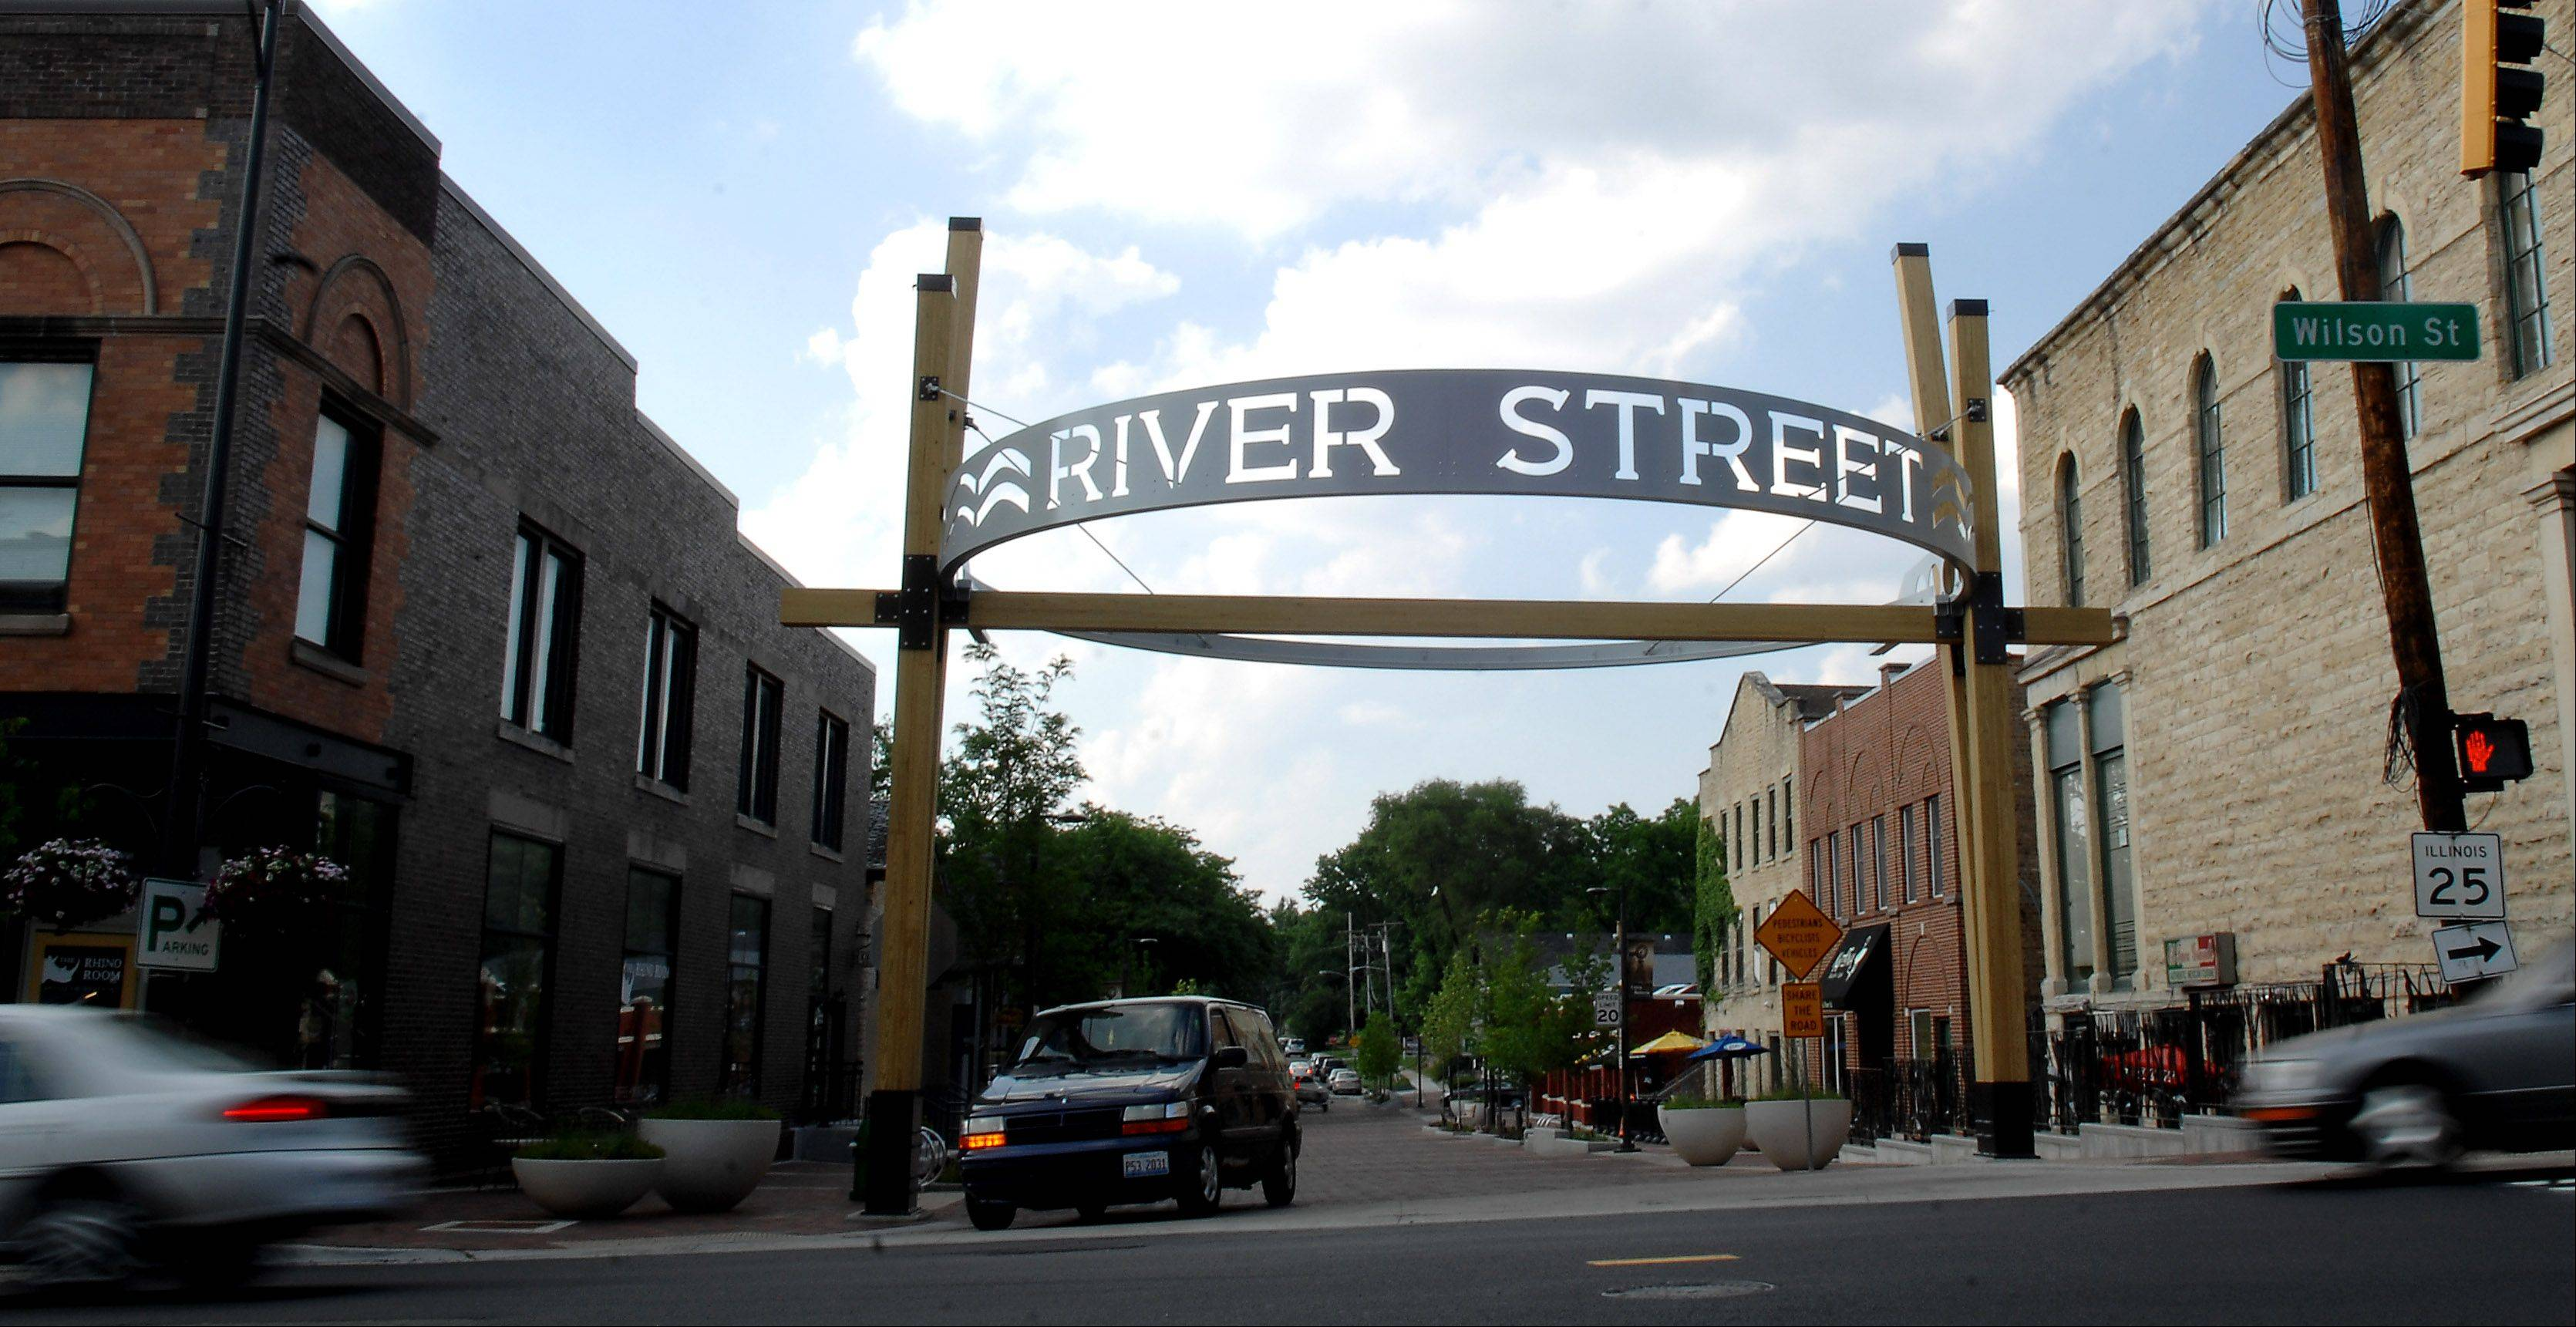 The new entrance arch to North River Street in Batavia is part of the refurbishing of streets and sidewalks downtown, but some have criticized the arch as ugly and frivolous use of taxpayer money.